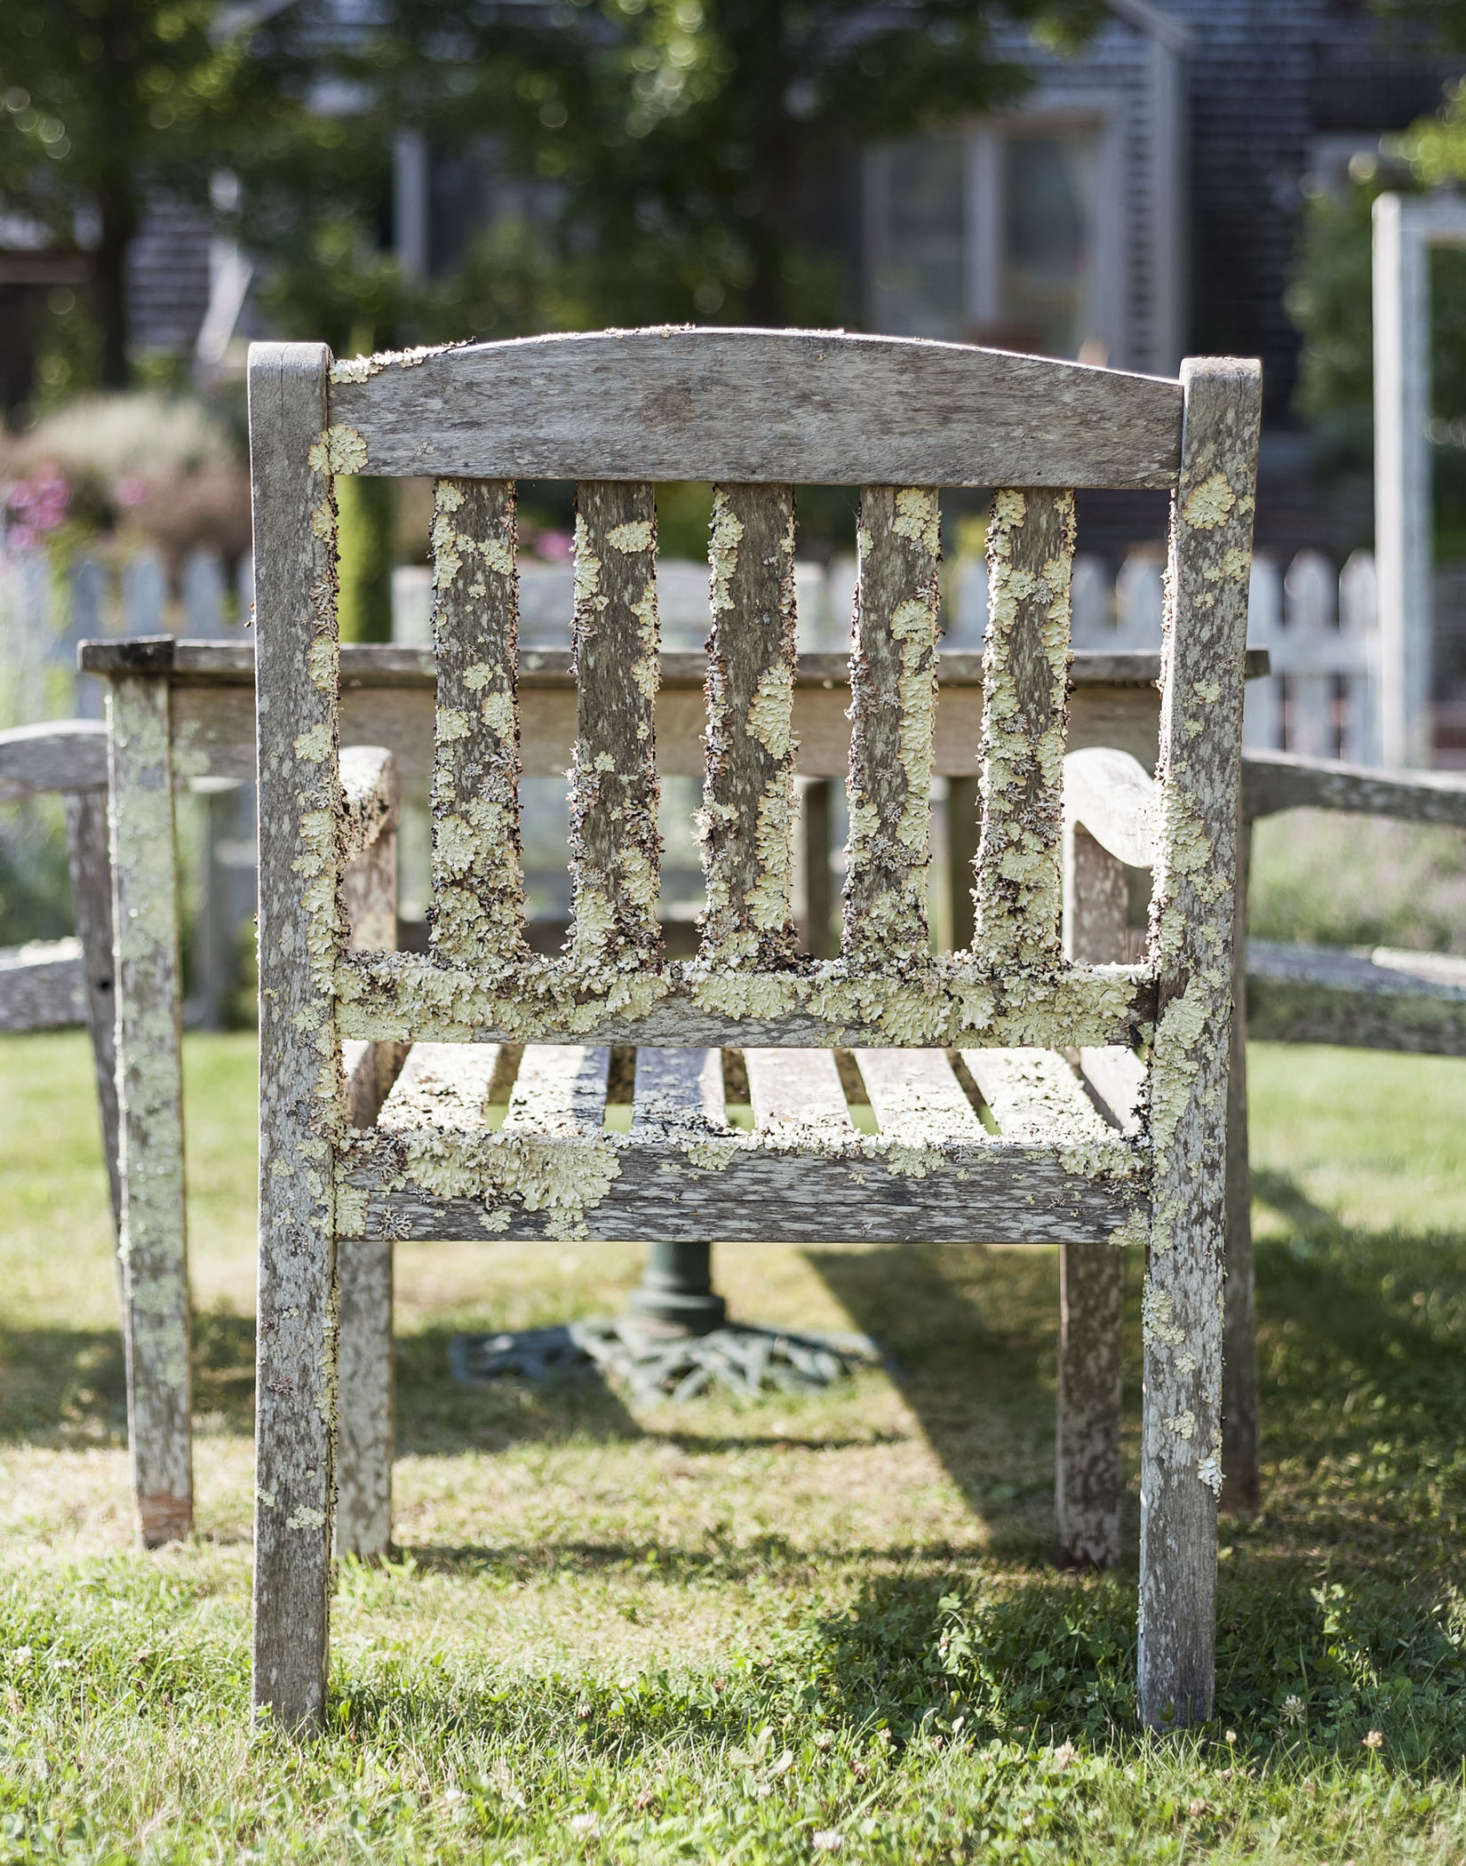 A well-loved set of outdoor wooden furniture has developed a mossy patina over time on Cape Cod. Photograph by Matthew Williams for Gardenista.